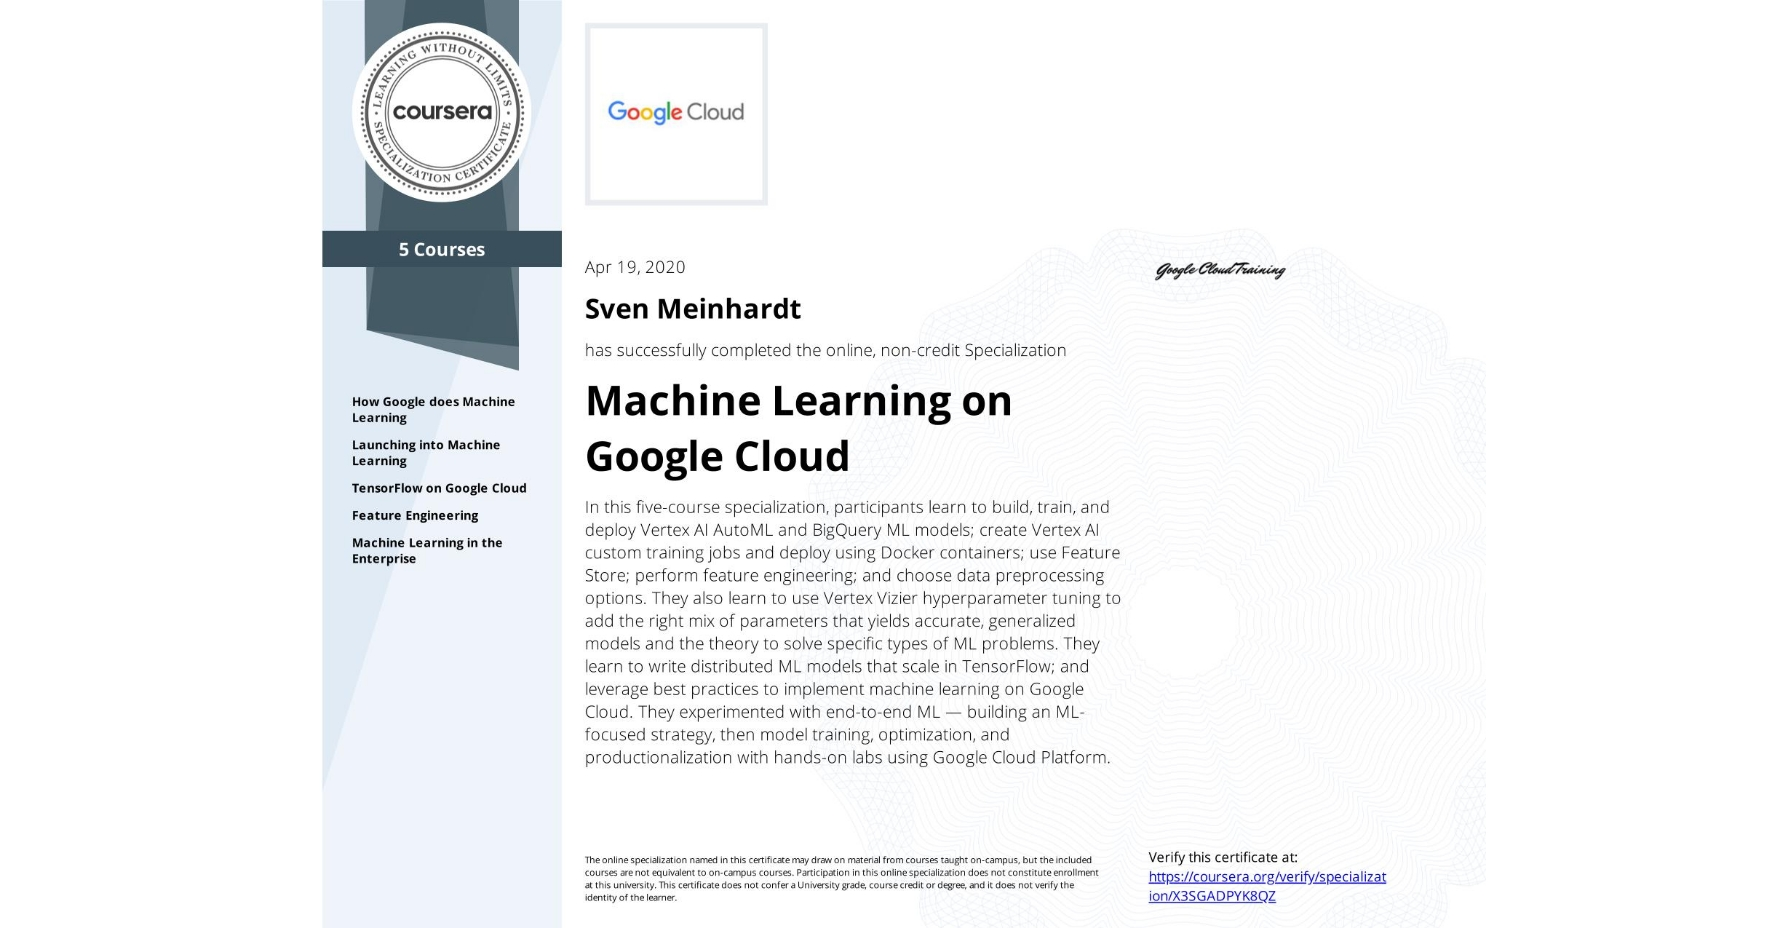 View certificate for Sven Meinhardt, Machine Learning with TensorFlow on Google Cloud Platform, offered through Coursera. This five-course online specialization teaches course participants how to write distributed machine learning models that scale in Tensorflow, scale out the training of those models. and offer high-performance predictions. Also featured is the conversion of raw data to features in a way that allows ML to learn important characteristics from the data and bring human insight to bear on the problem. It also teaches how to incorporate the right mix of parameters that yields accurate, generalized models and knowledge of the theory to solve specific types of ML problems. Course participants experimented with end-to-end ML, starting from building an ML-focused strategy and progressing into model training, optimization, and productionalization with hands-on labs using Google Cloud Platform.